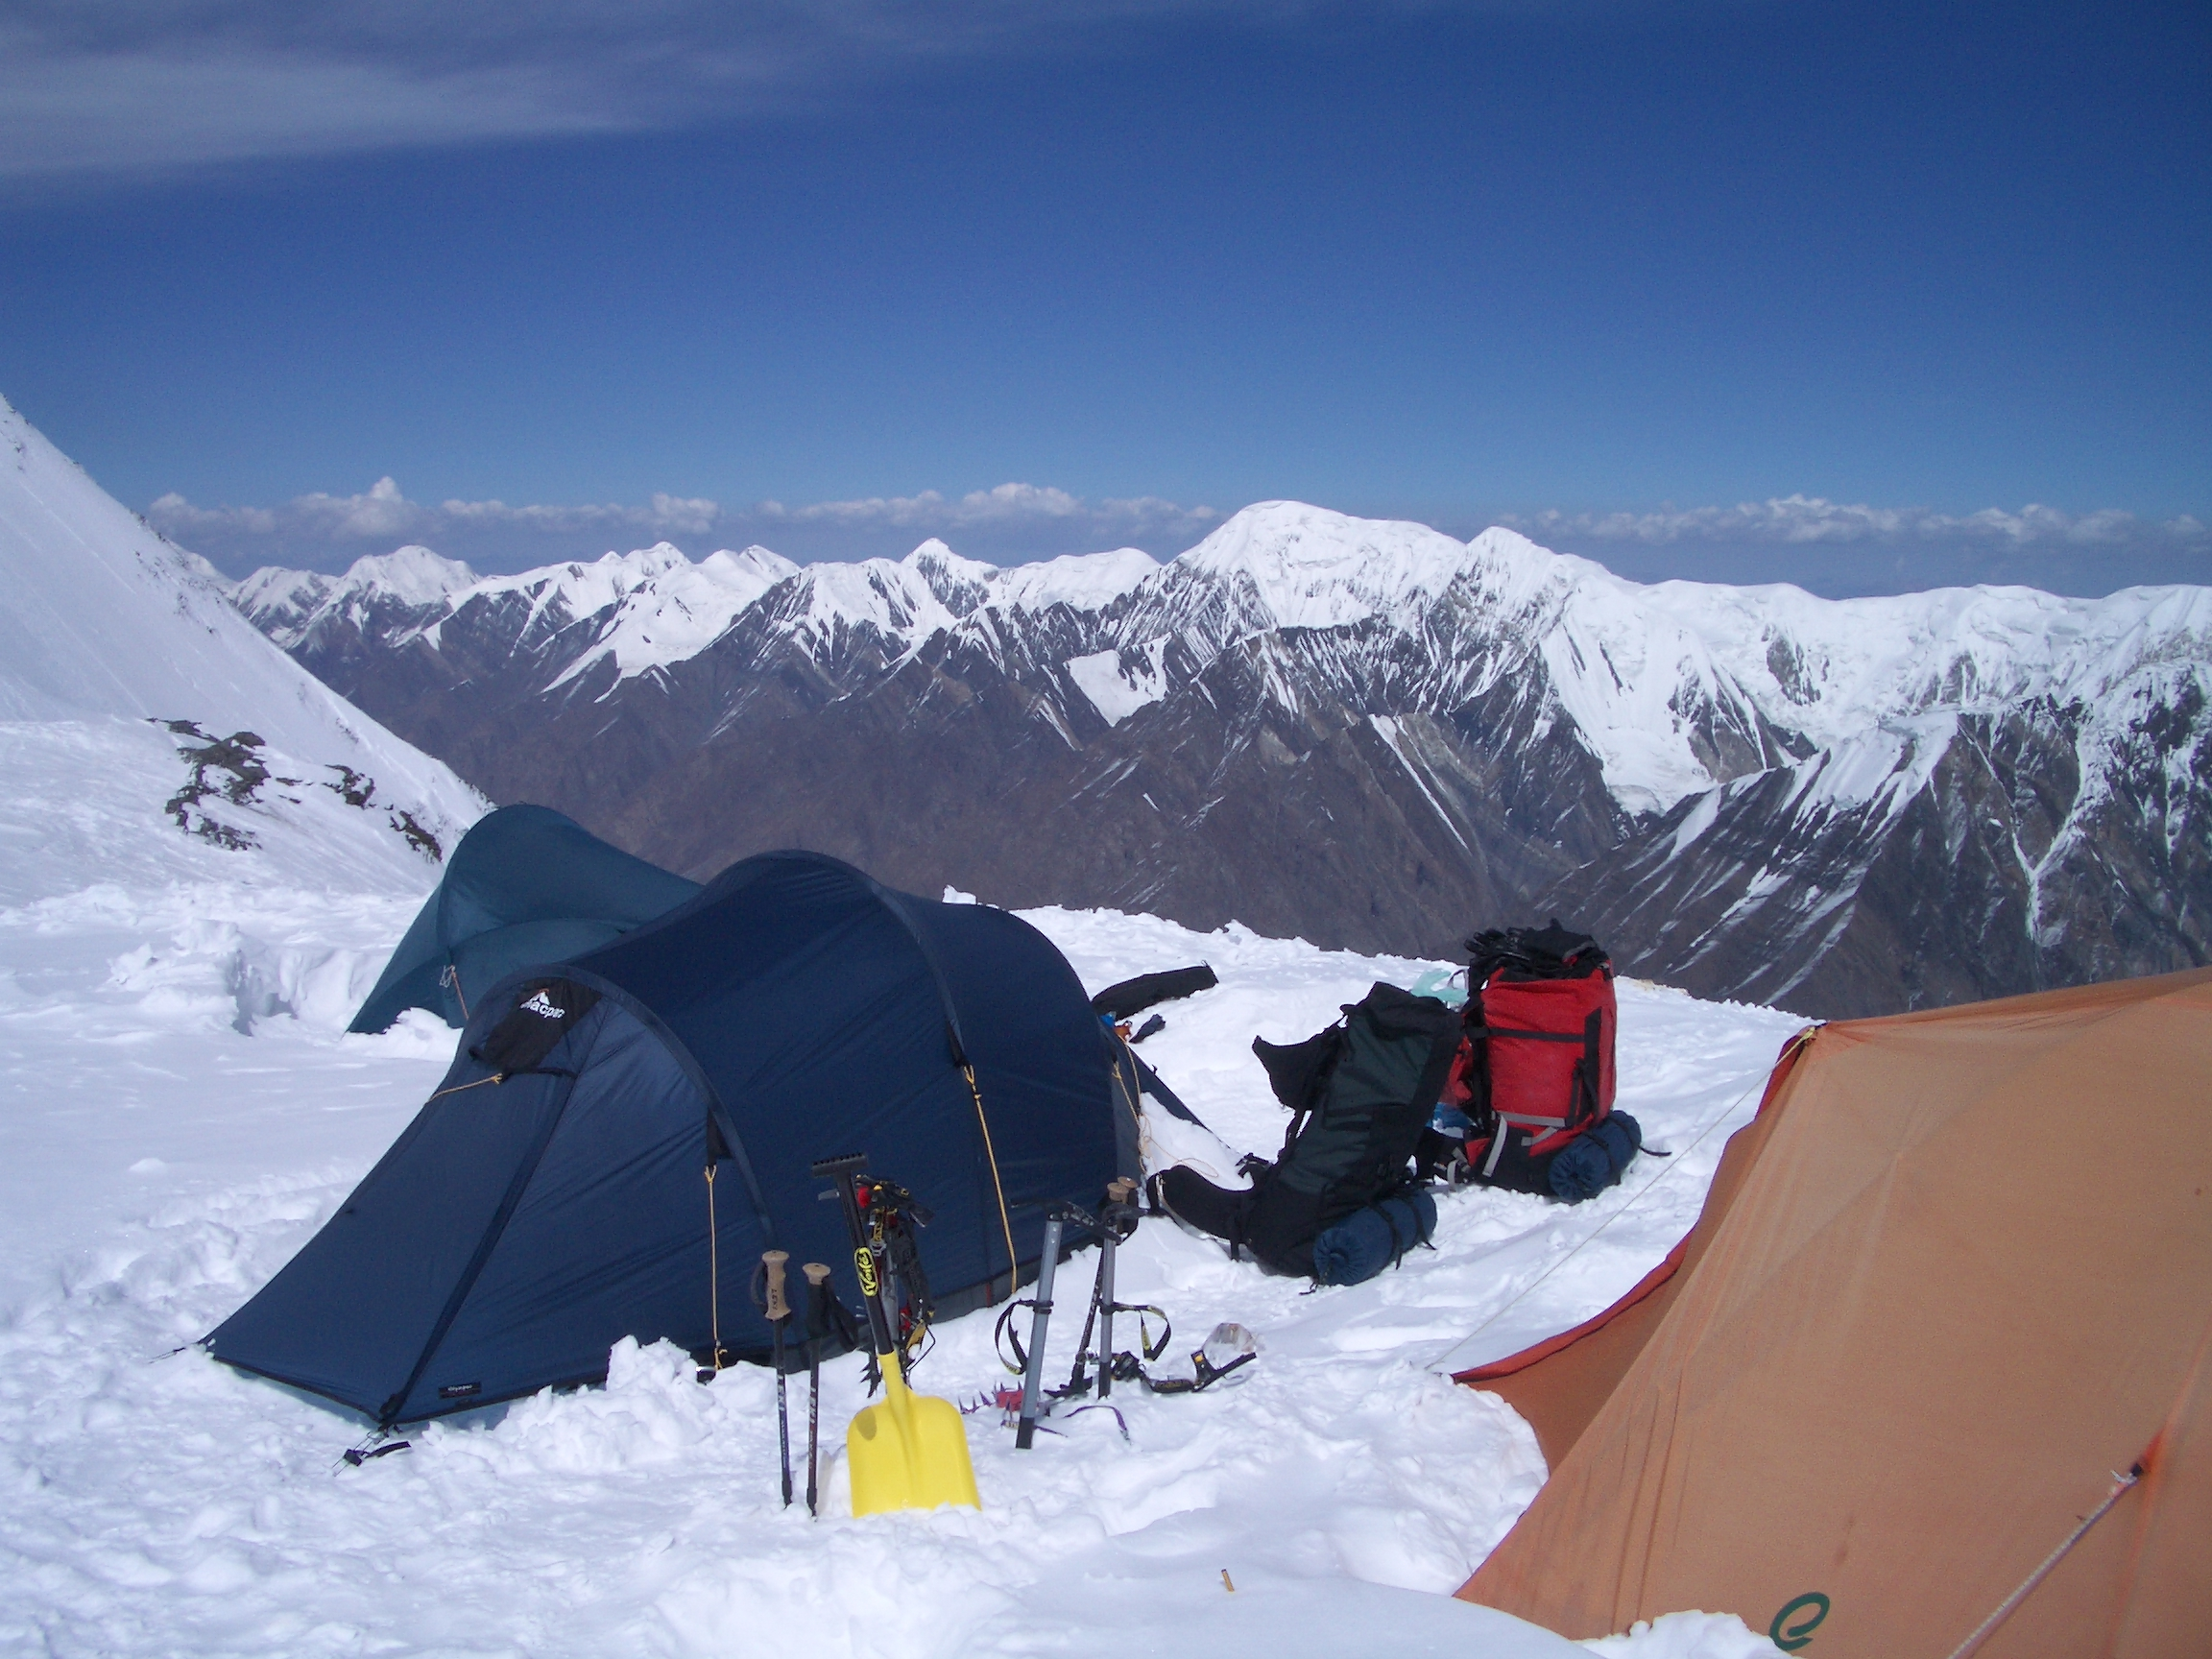 Our tent at Camp 2 on Khan Tengri